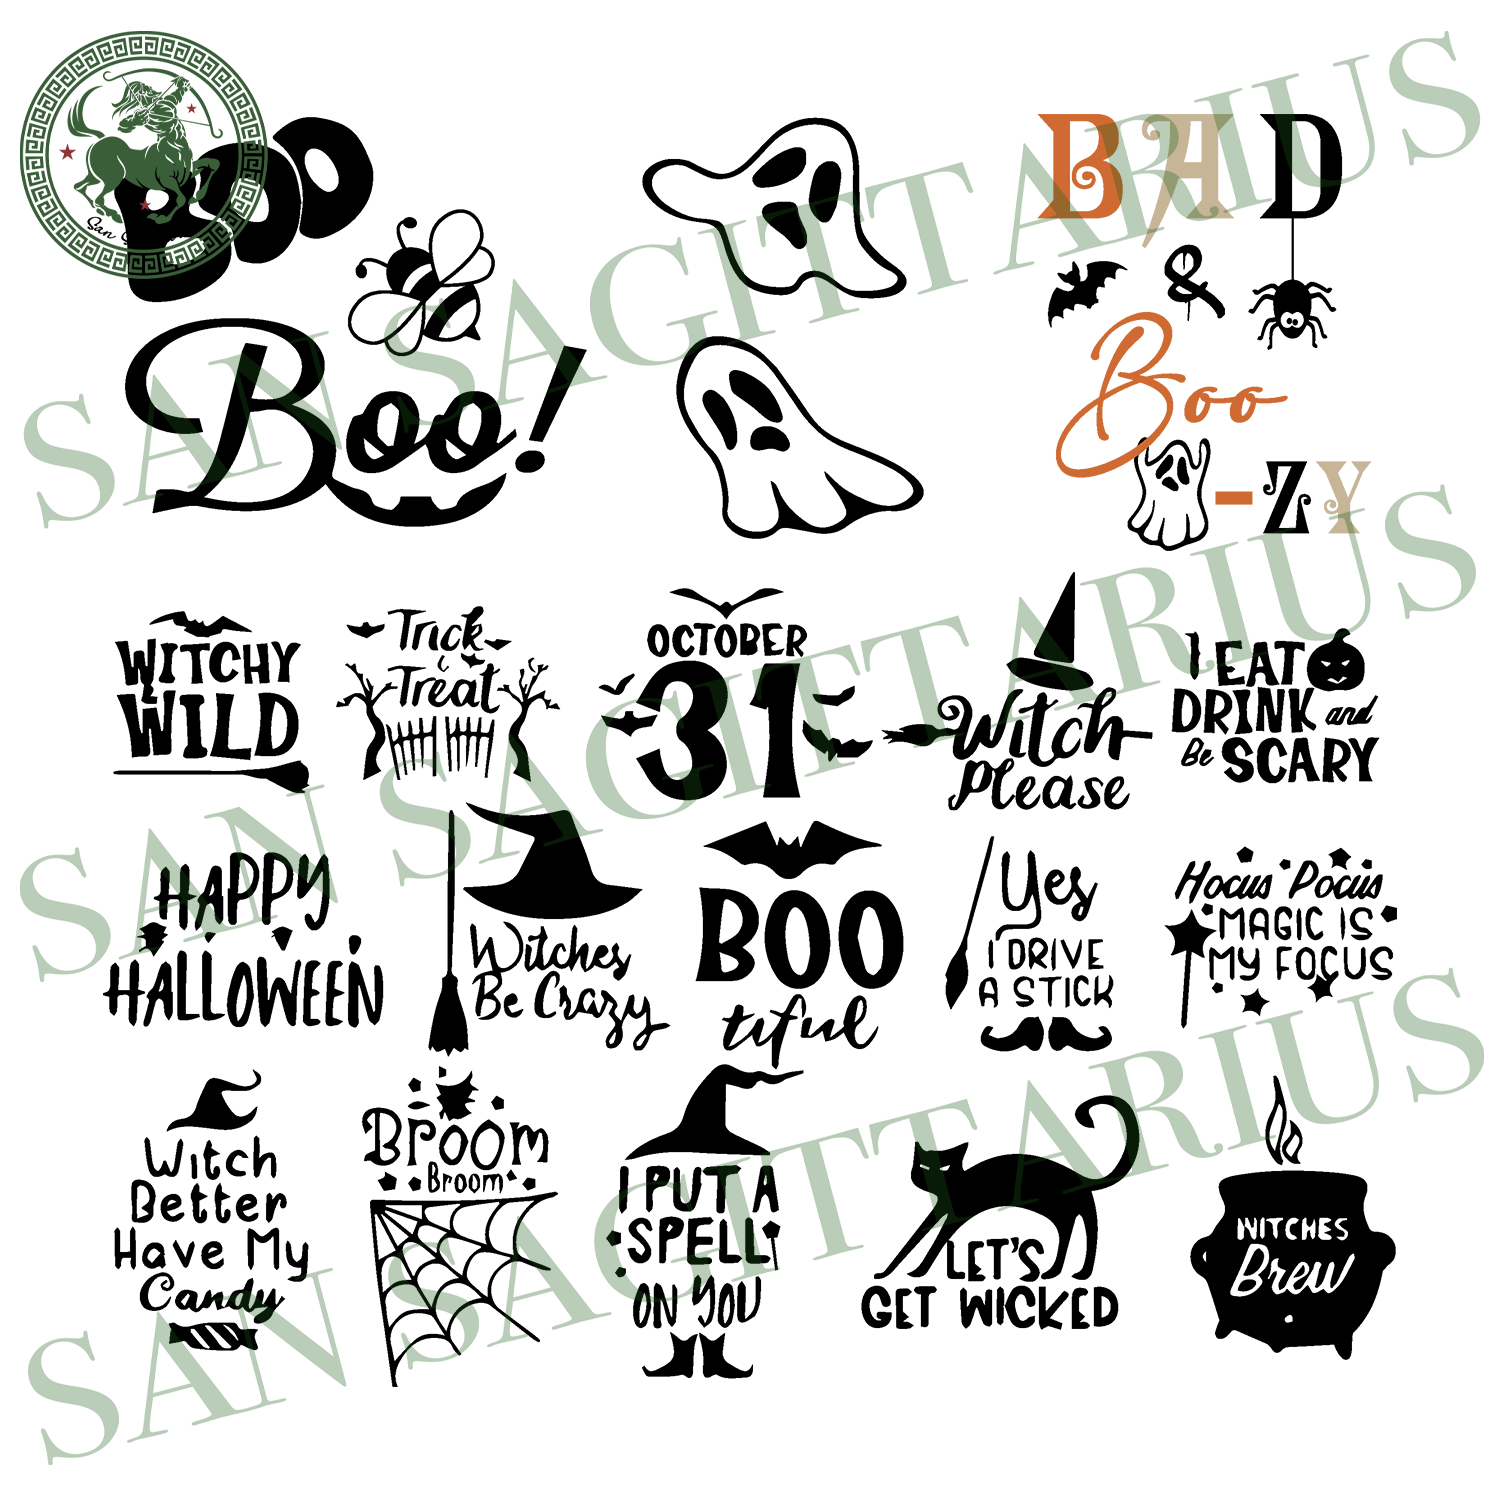 Boo Bundle, Halloween Svg, Bundle Svg, Boo Svg, Bee Svg, Boo Bee Svg, Pumpkin Svg, Witch Svg, Witch Hat, Pattern Svg, Happy Halloween, Halloween Shirt, Halloween Gift Boo Shirt, Pumpkin Shirt